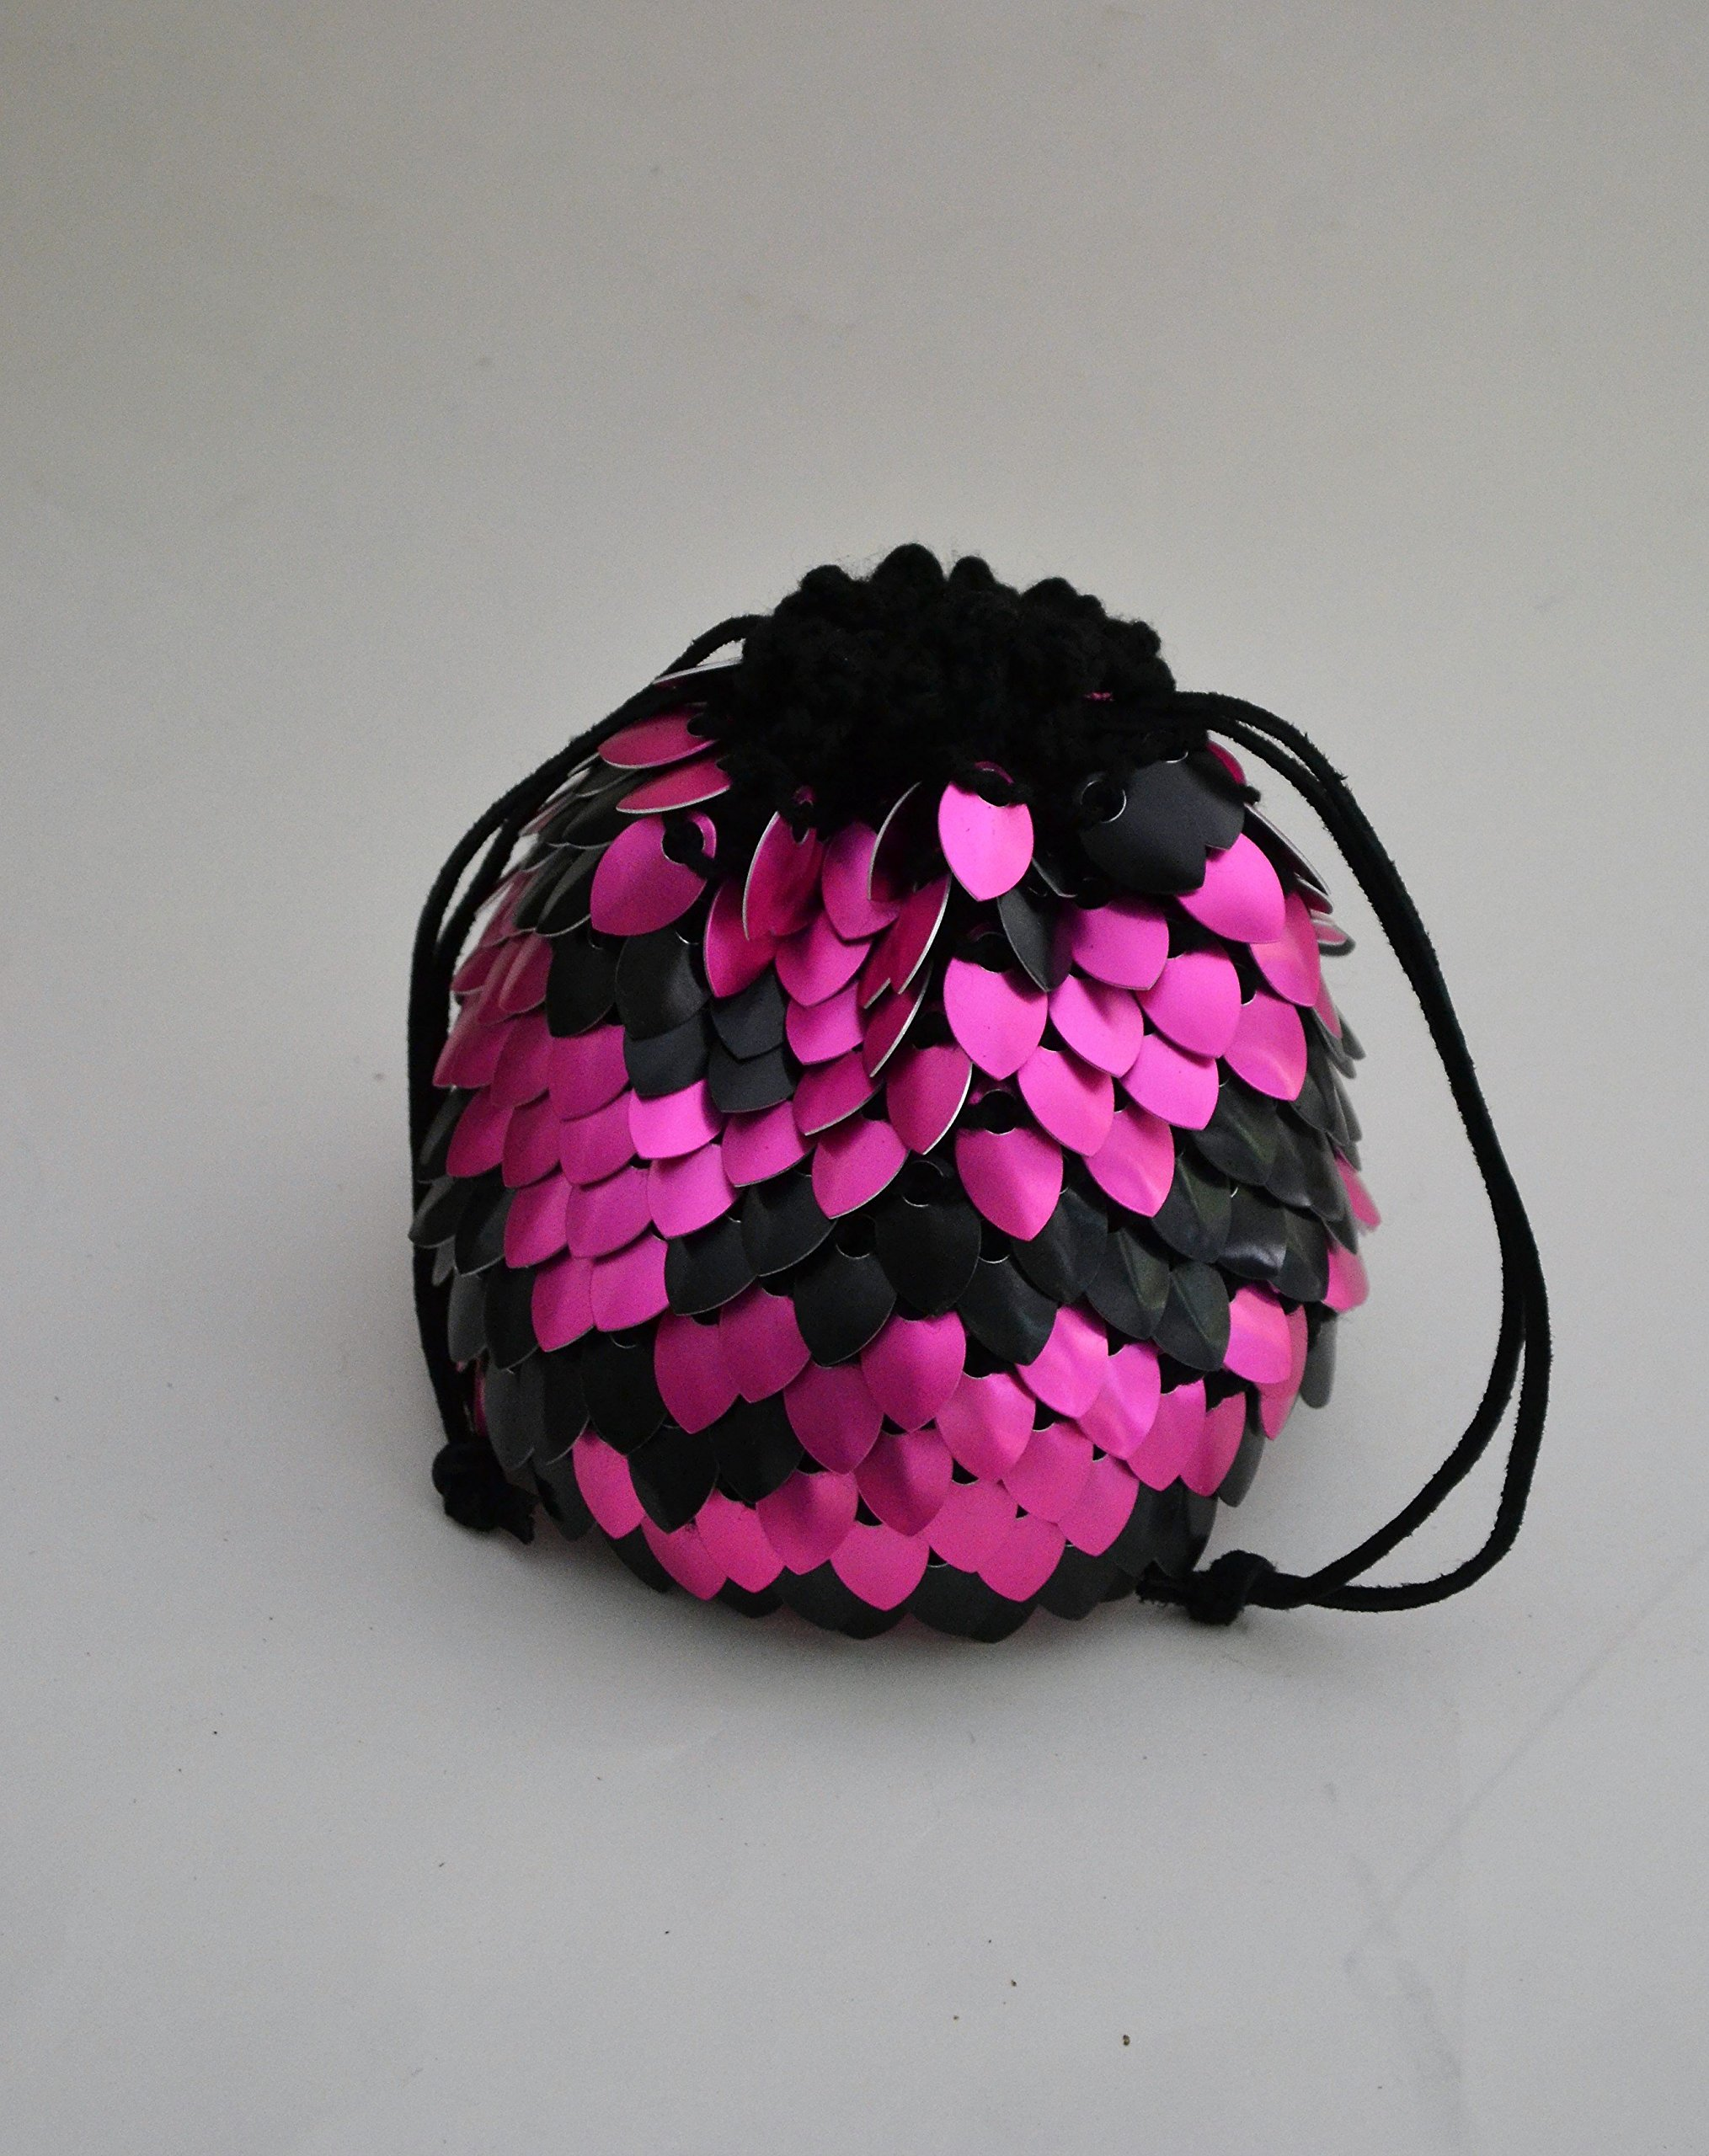 Dice Bag of Holding in knitted Dragonhide Armor - Pink Zebra - Extra Large